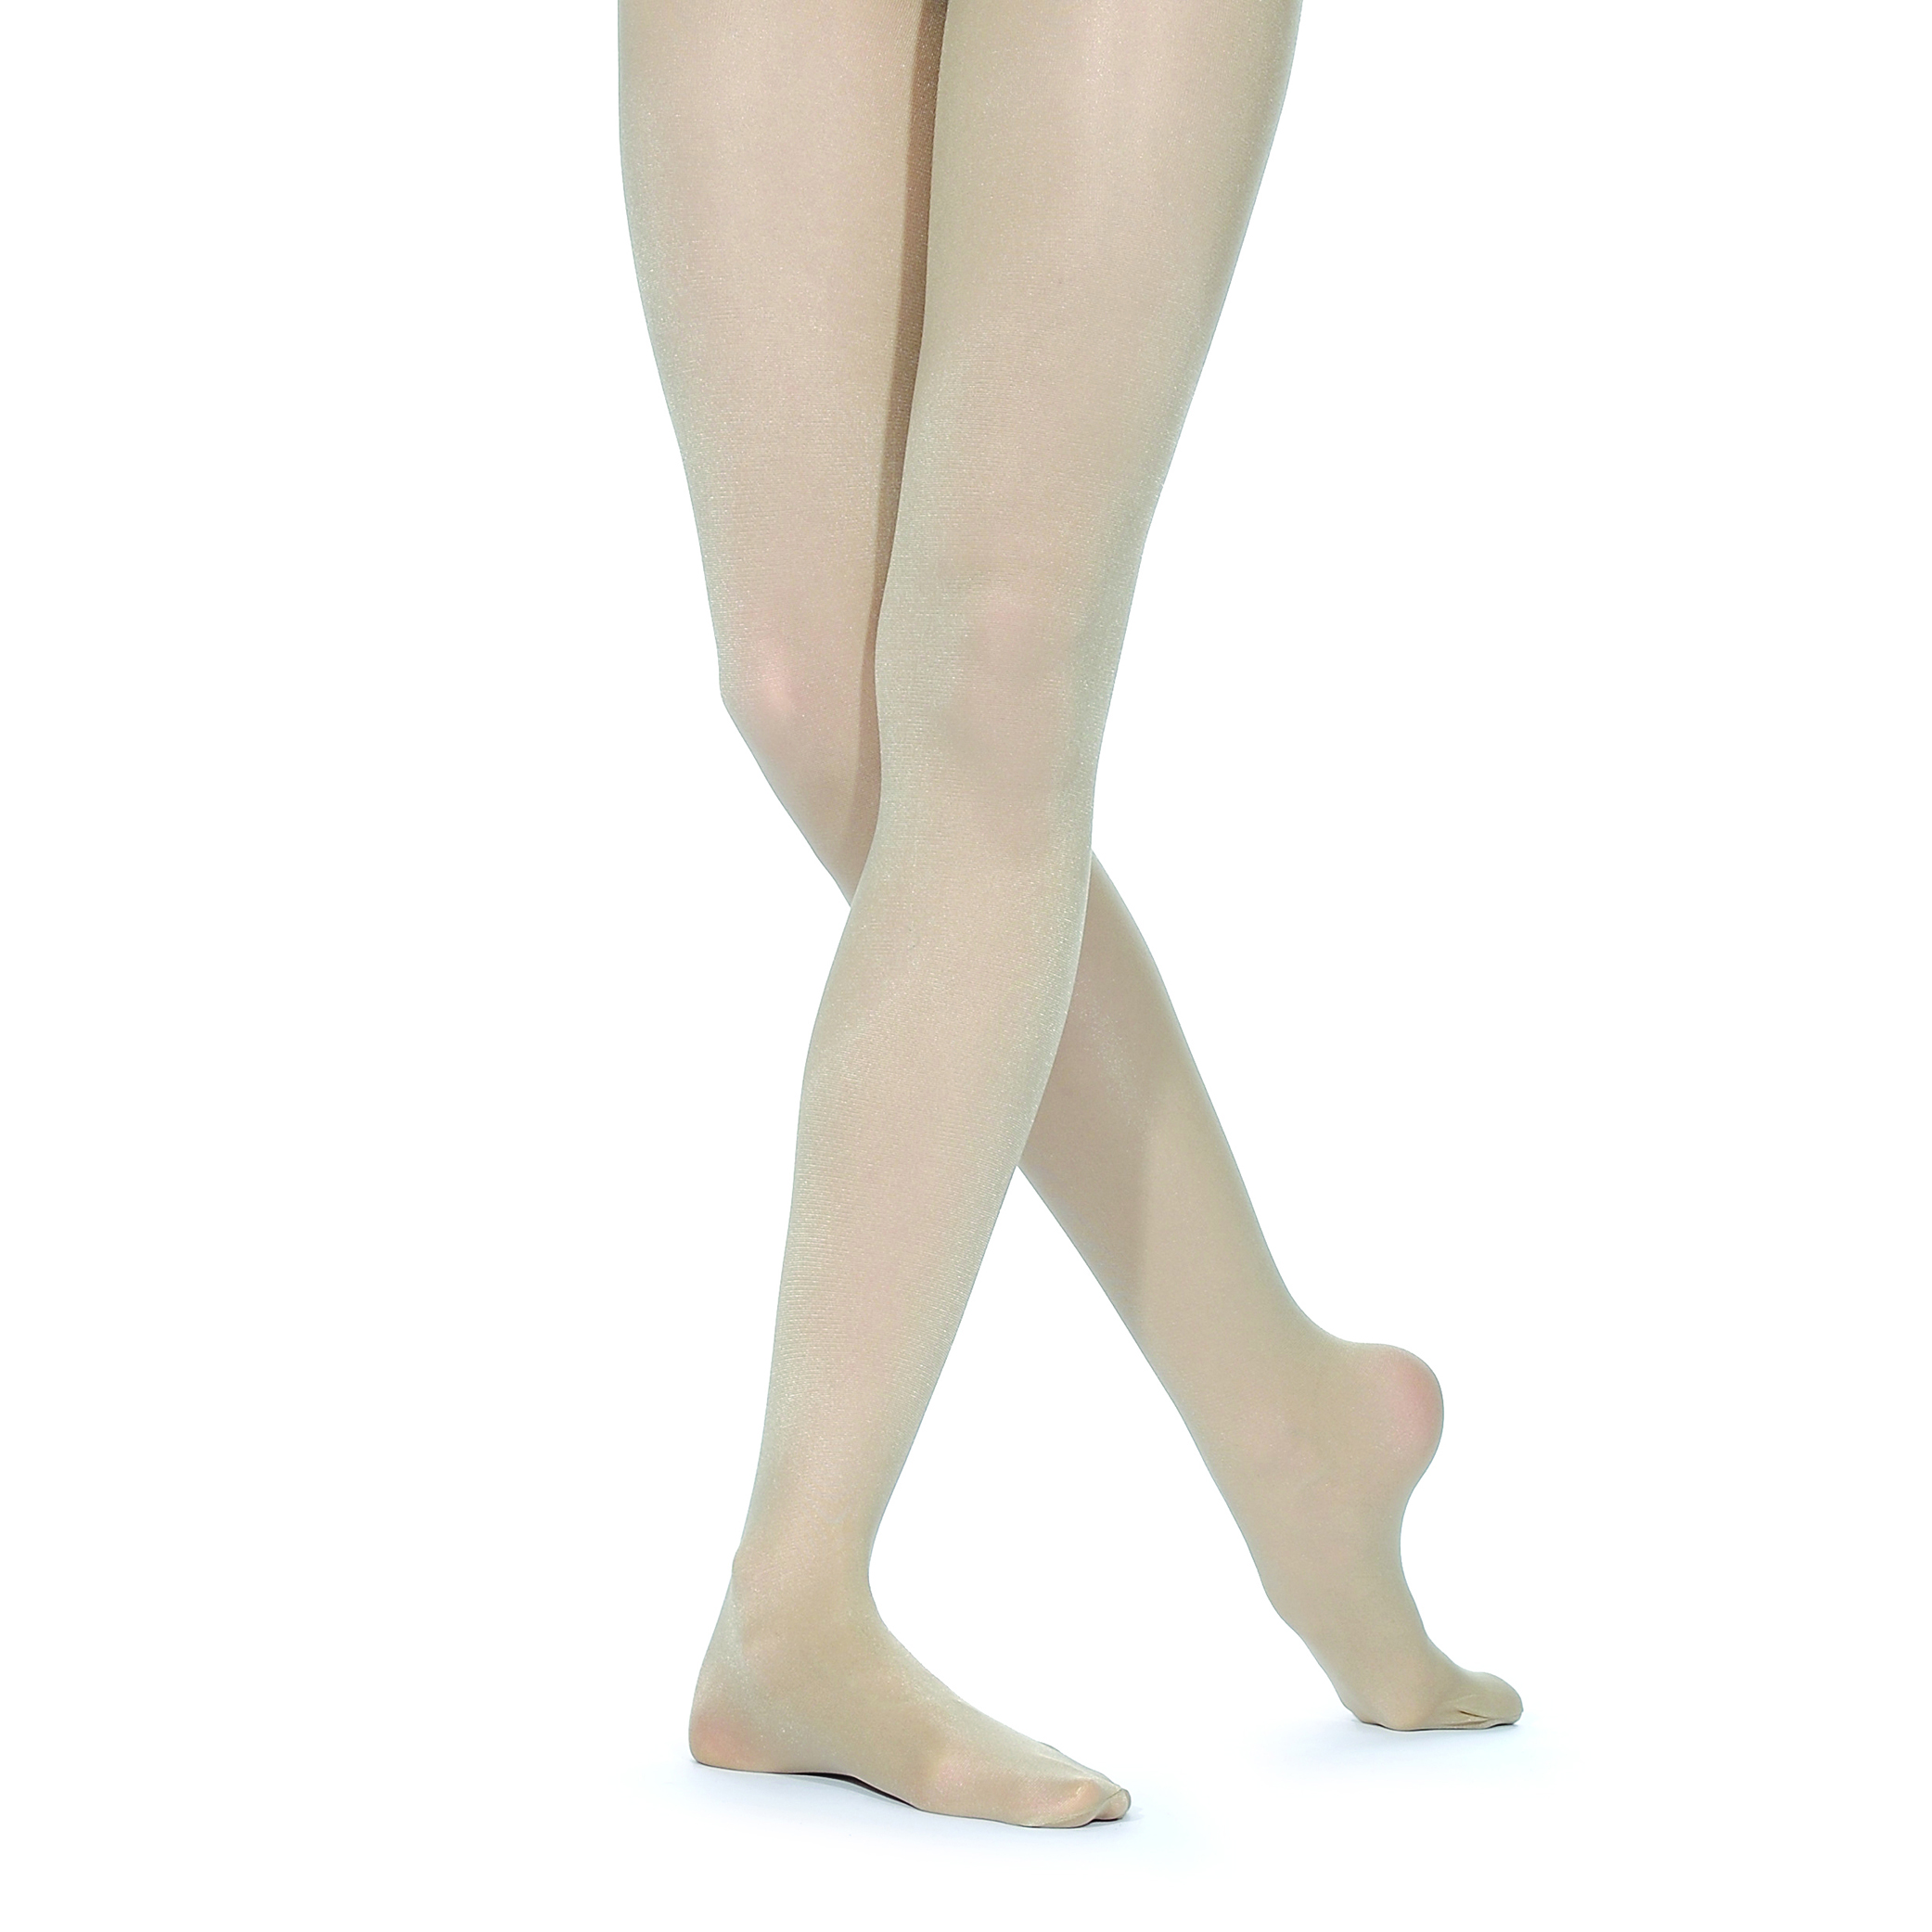 f4ac30b7fccbd Silky Shimmer Footed Ballet Dance Tights Light Toast | World of Dance UK